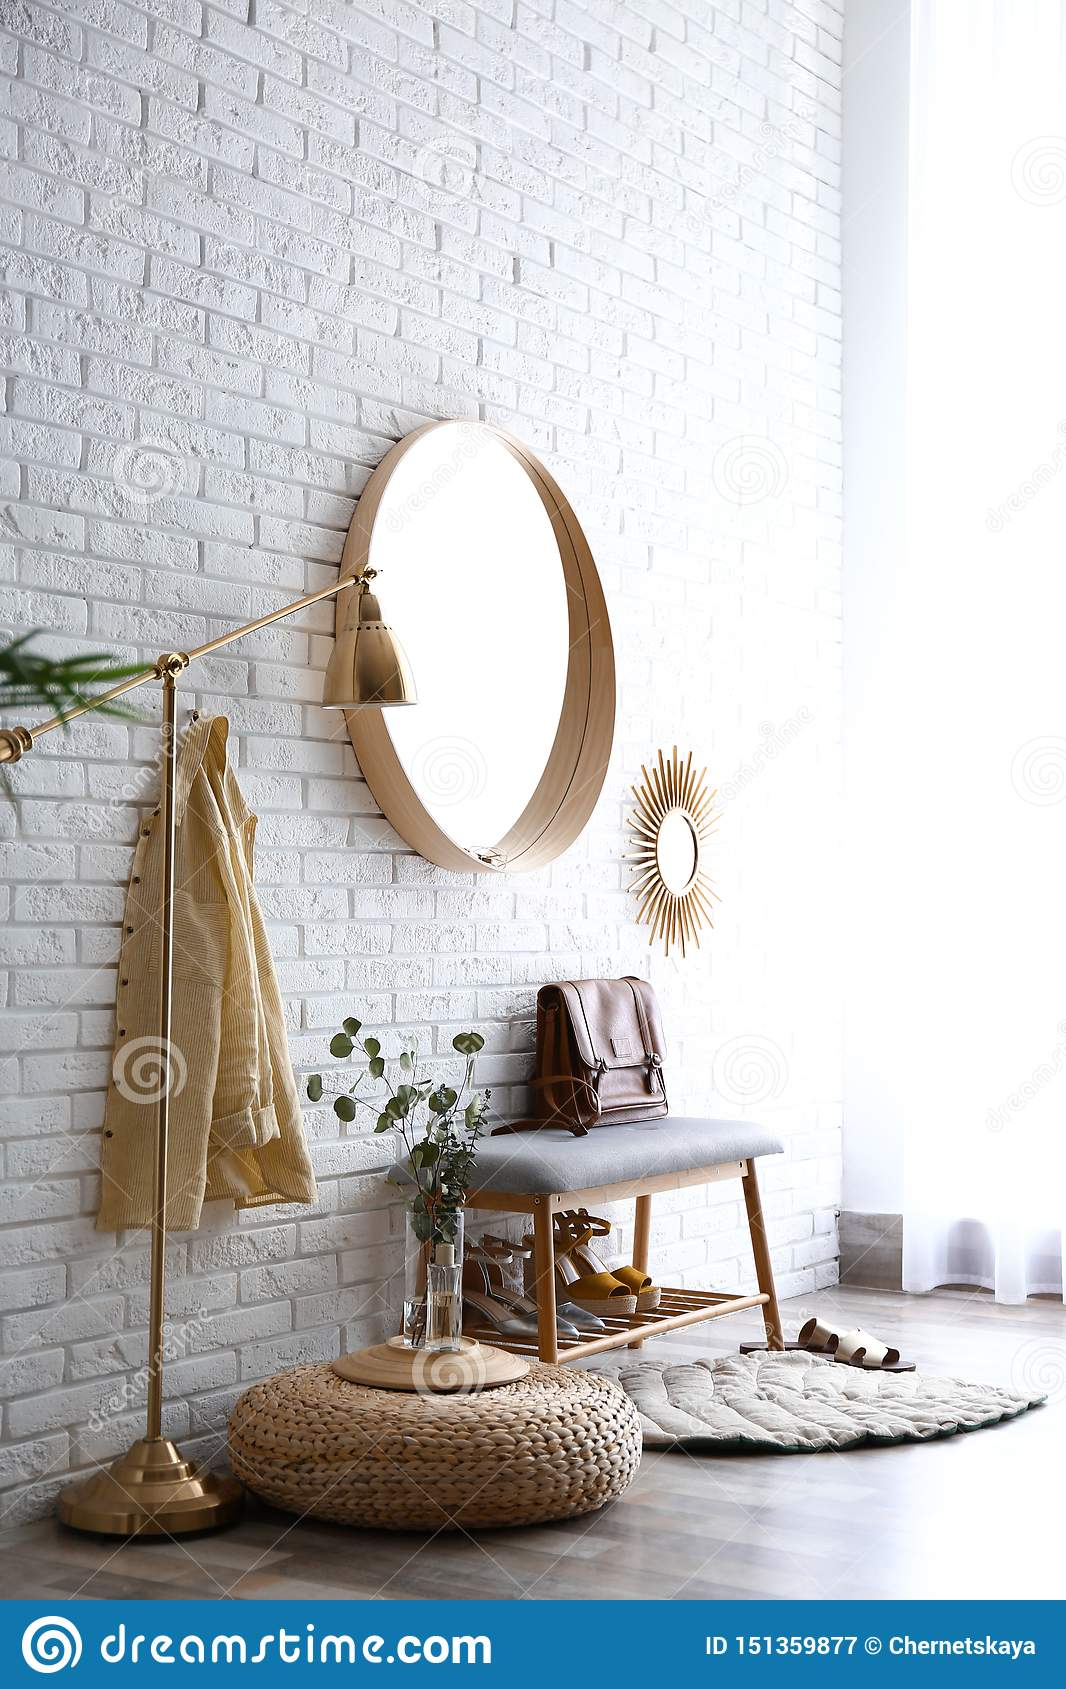 Hallway Interior With Big Round Mirror And Shoe Storage Bench Stock Image Image Of Entrance Comfort 151359877